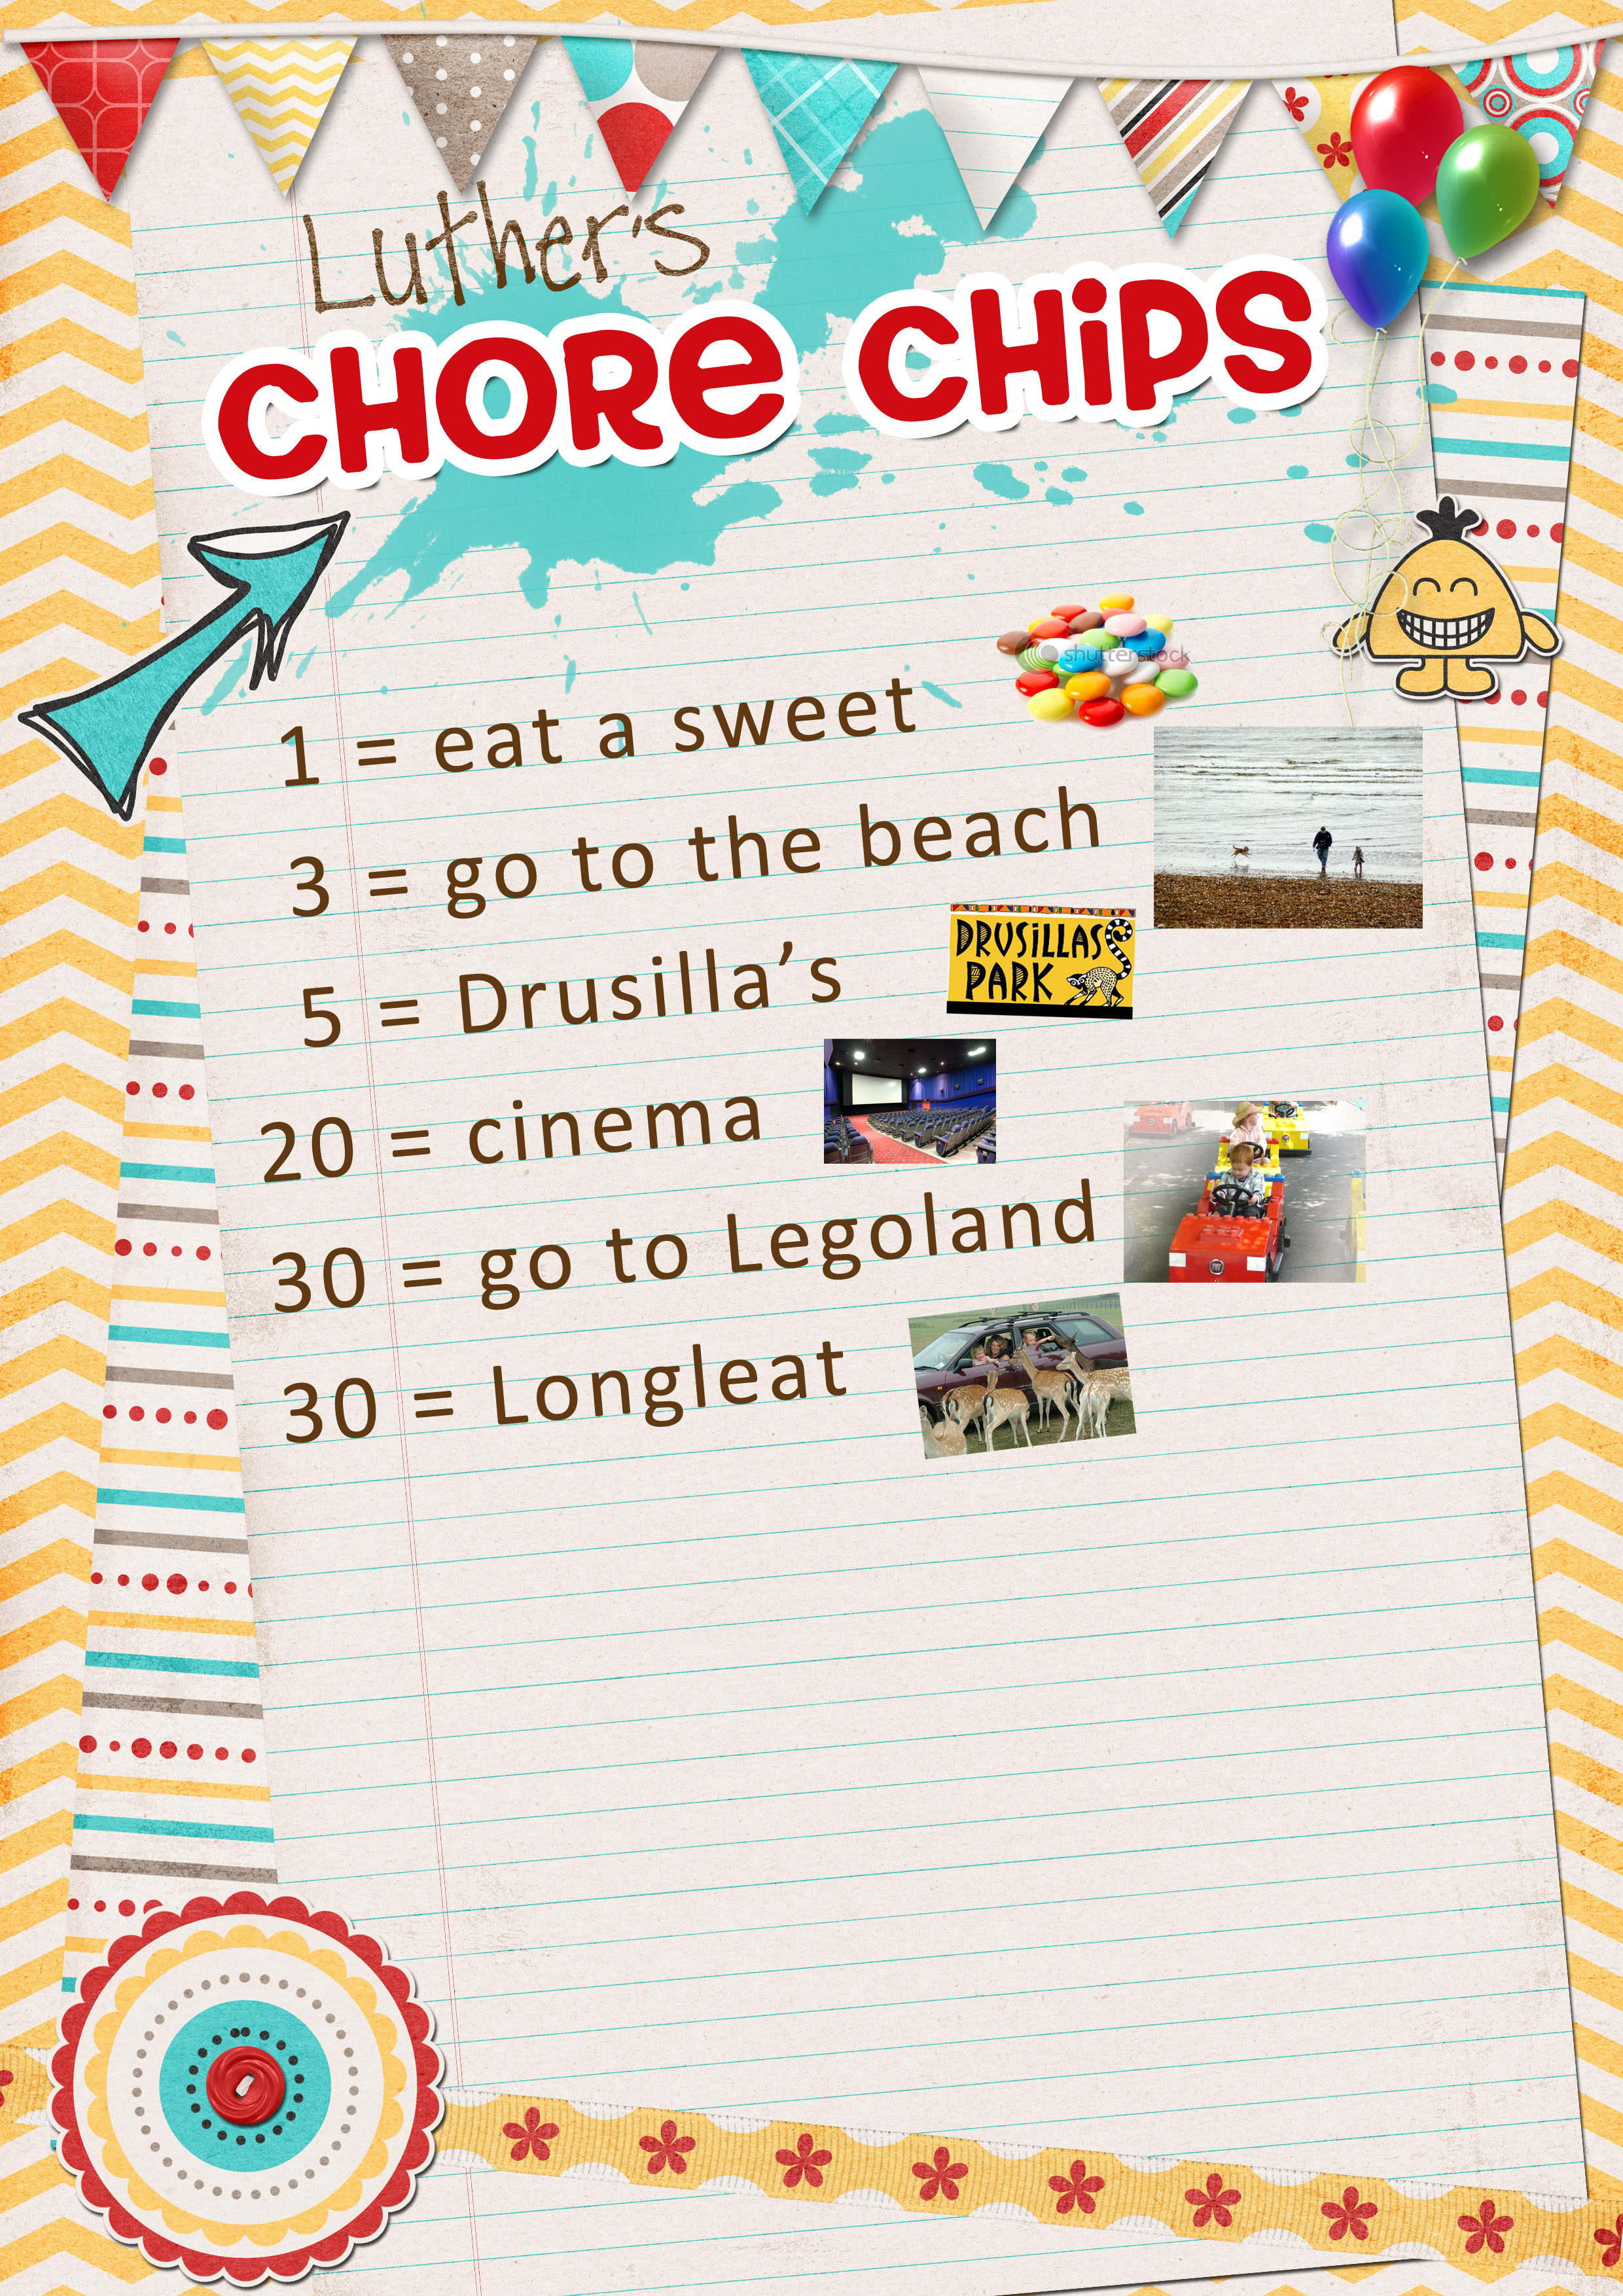 Chore chips price list